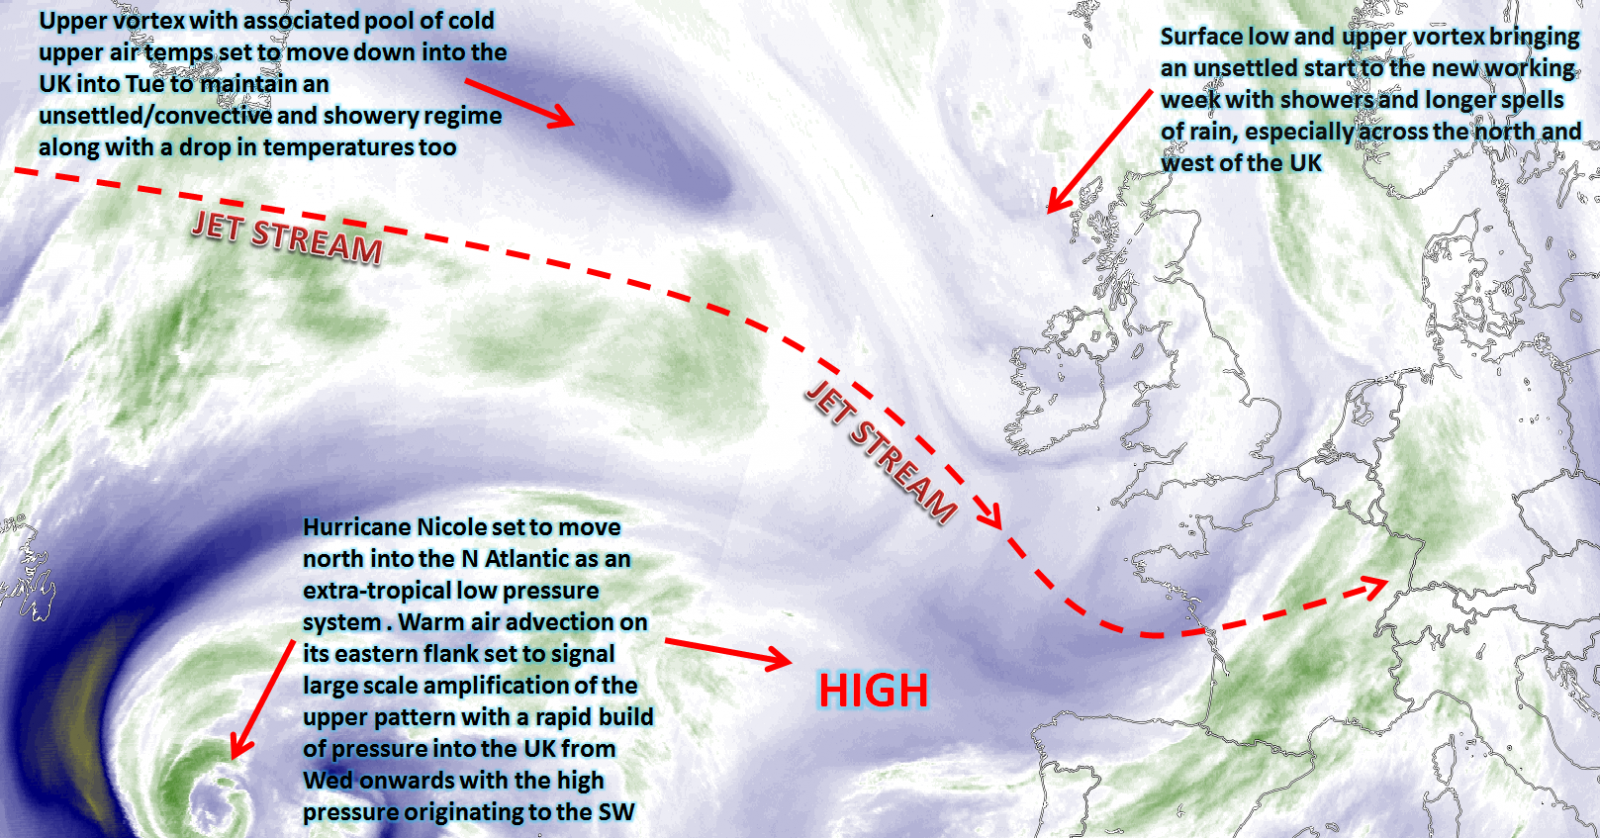 Synoptic guidance - week ahead - 17th October